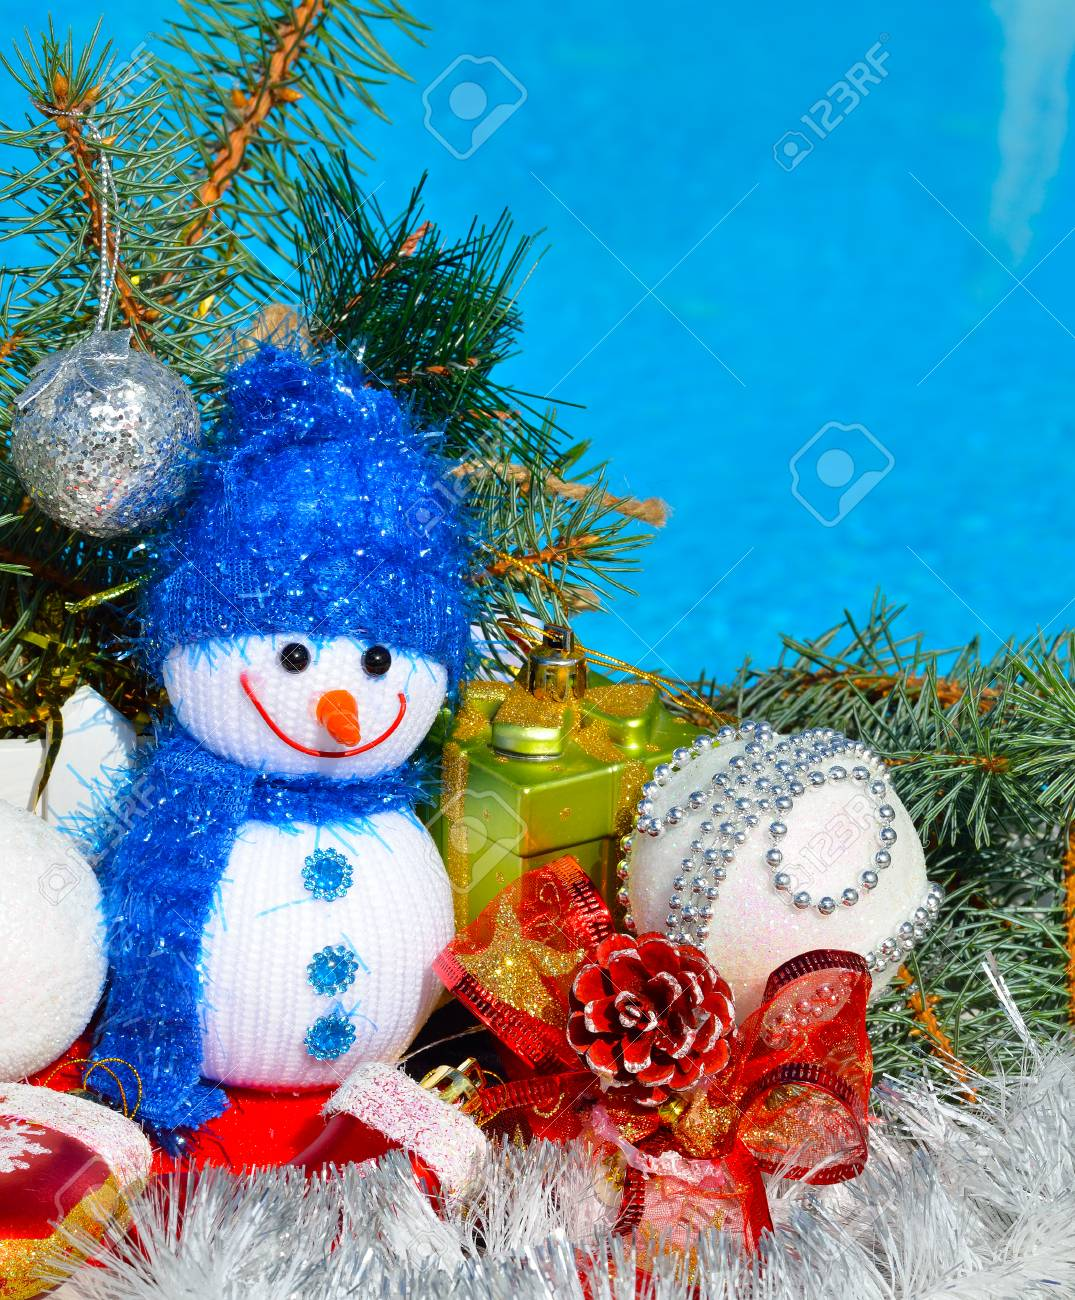 snowman christmas decorations and pine branch opposite the pool stock photo 48548118